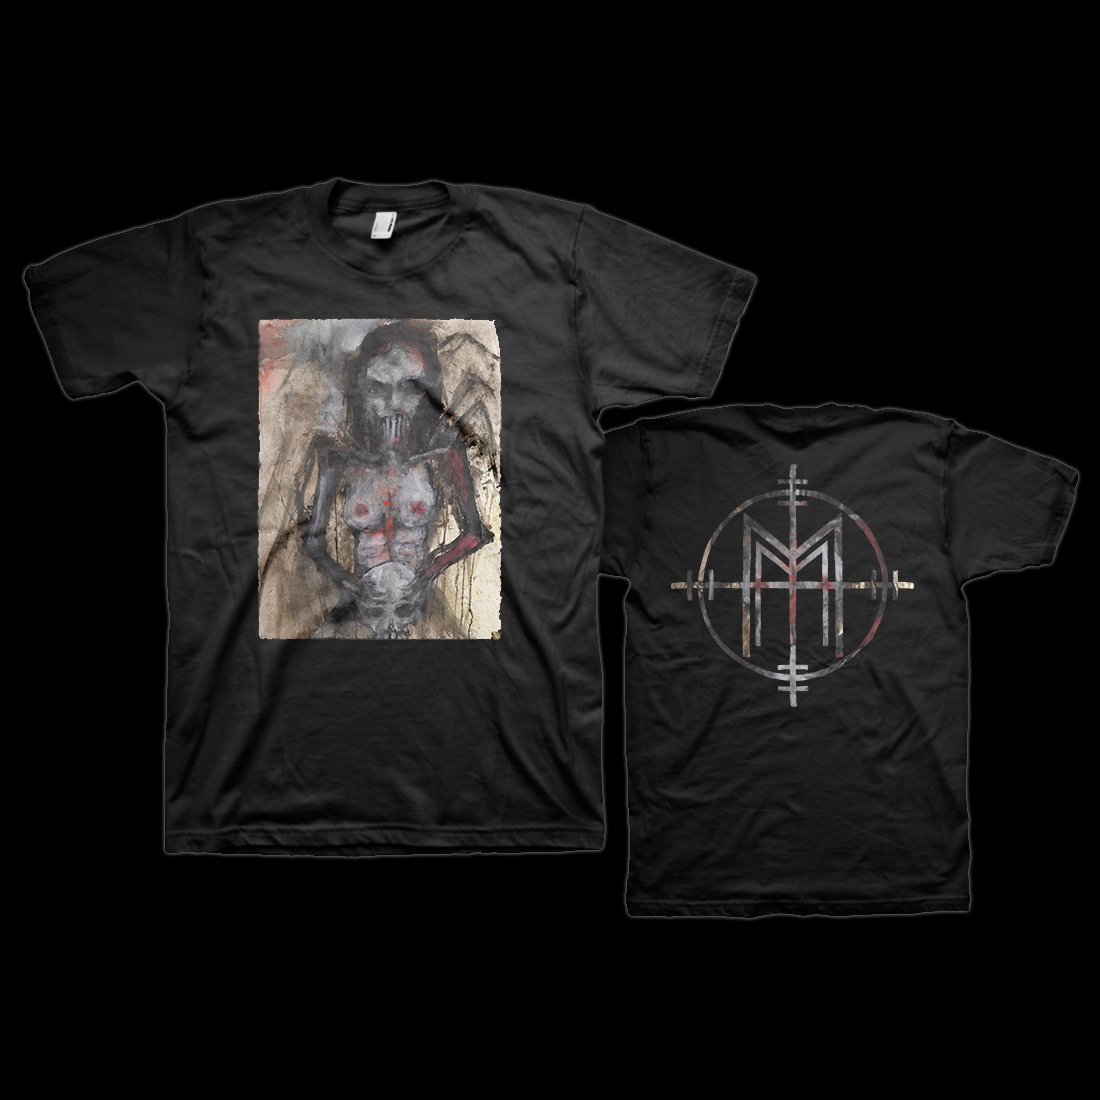 marilyn manson phobia t shirt shop the musictoday. Black Bedroom Furniture Sets. Home Design Ideas